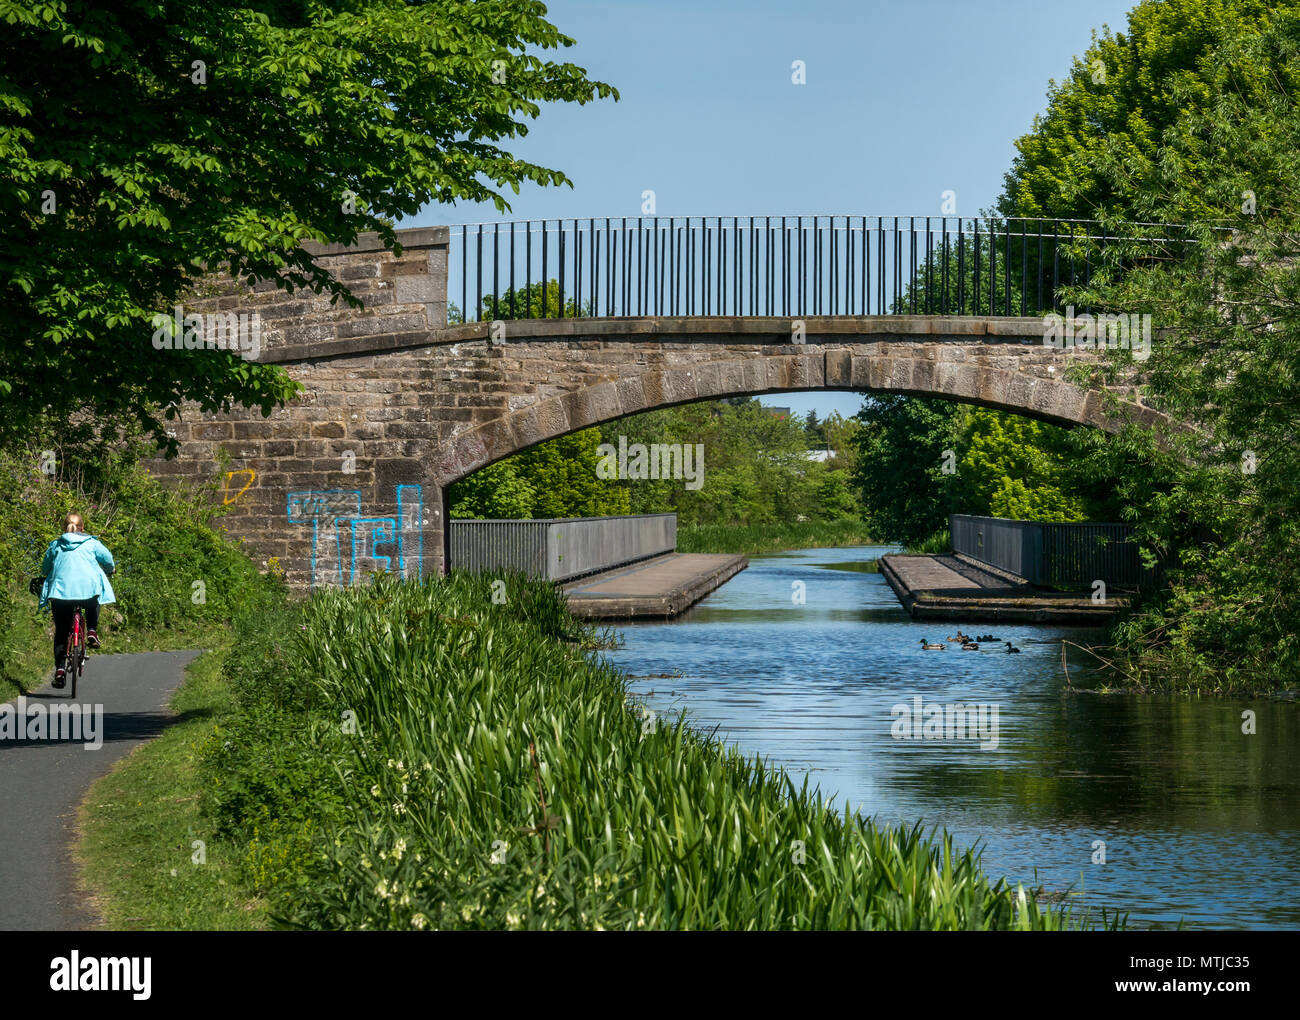 Woman riding bicycle on towpath, Union canal, Edinburgh, Scotland, UK, with aqueduct and ducks - Stock Image